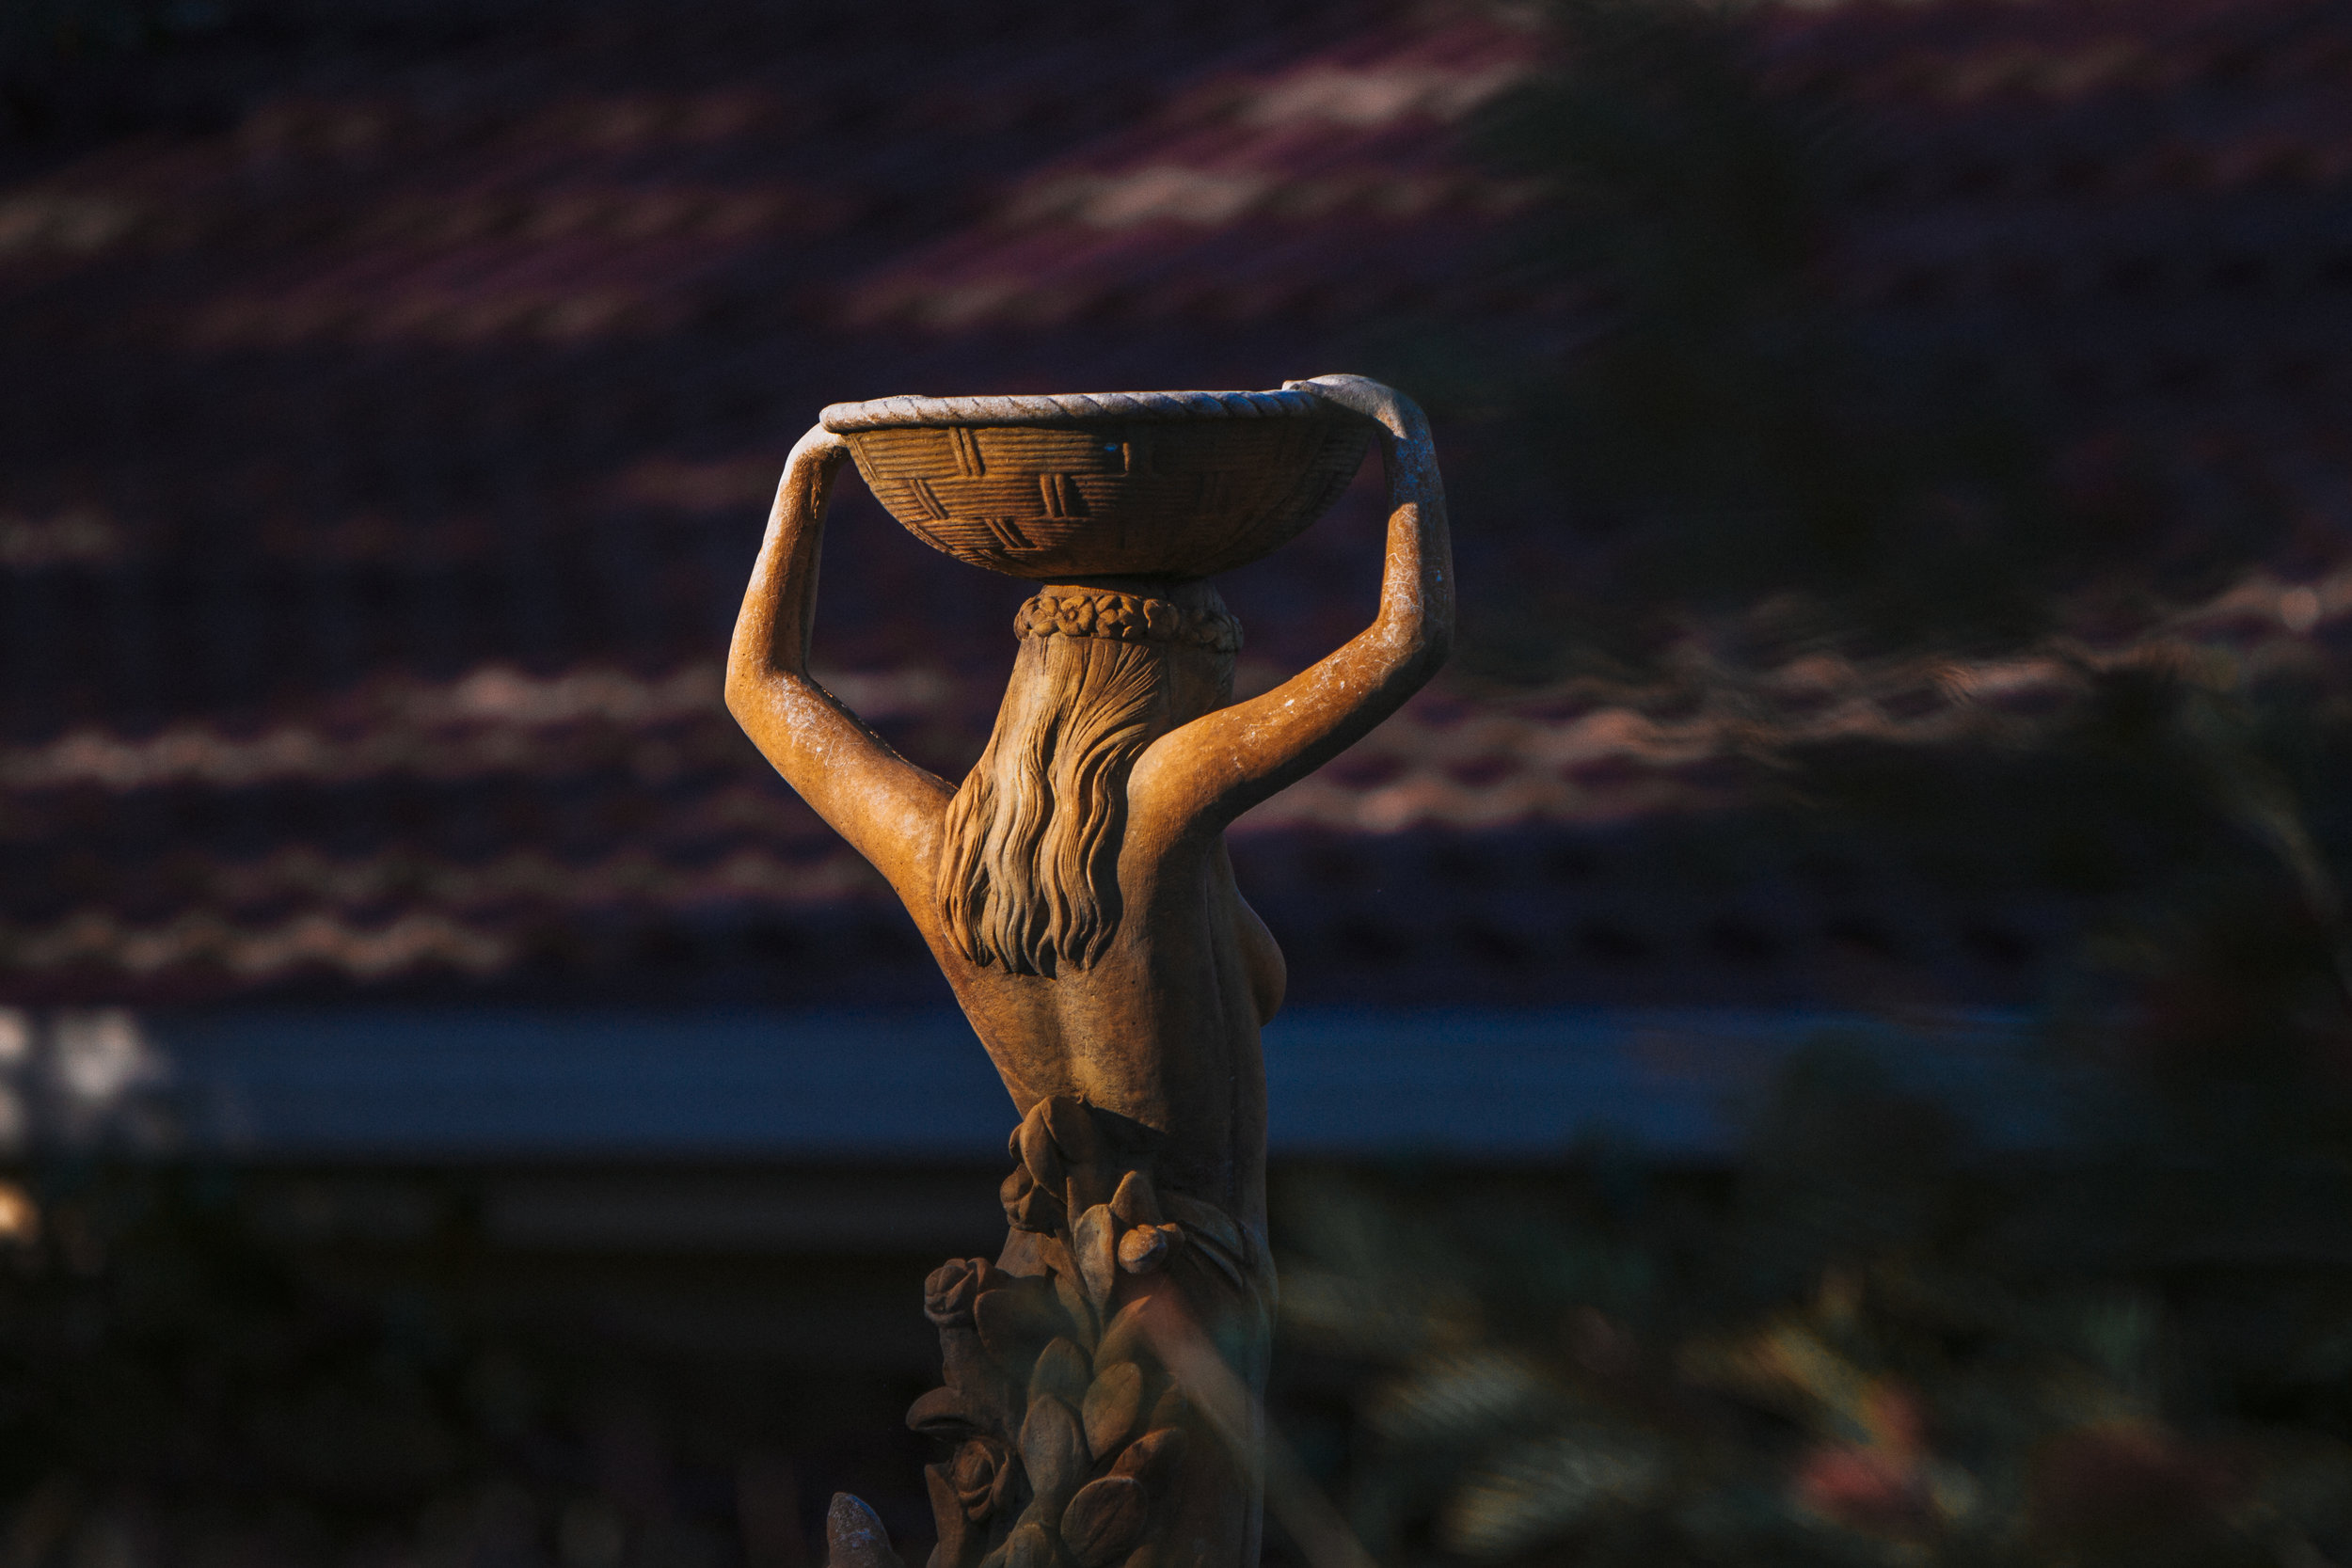 A water bearer statue near my sisters house. Something I see when I go on my contemplative walks when visiting.